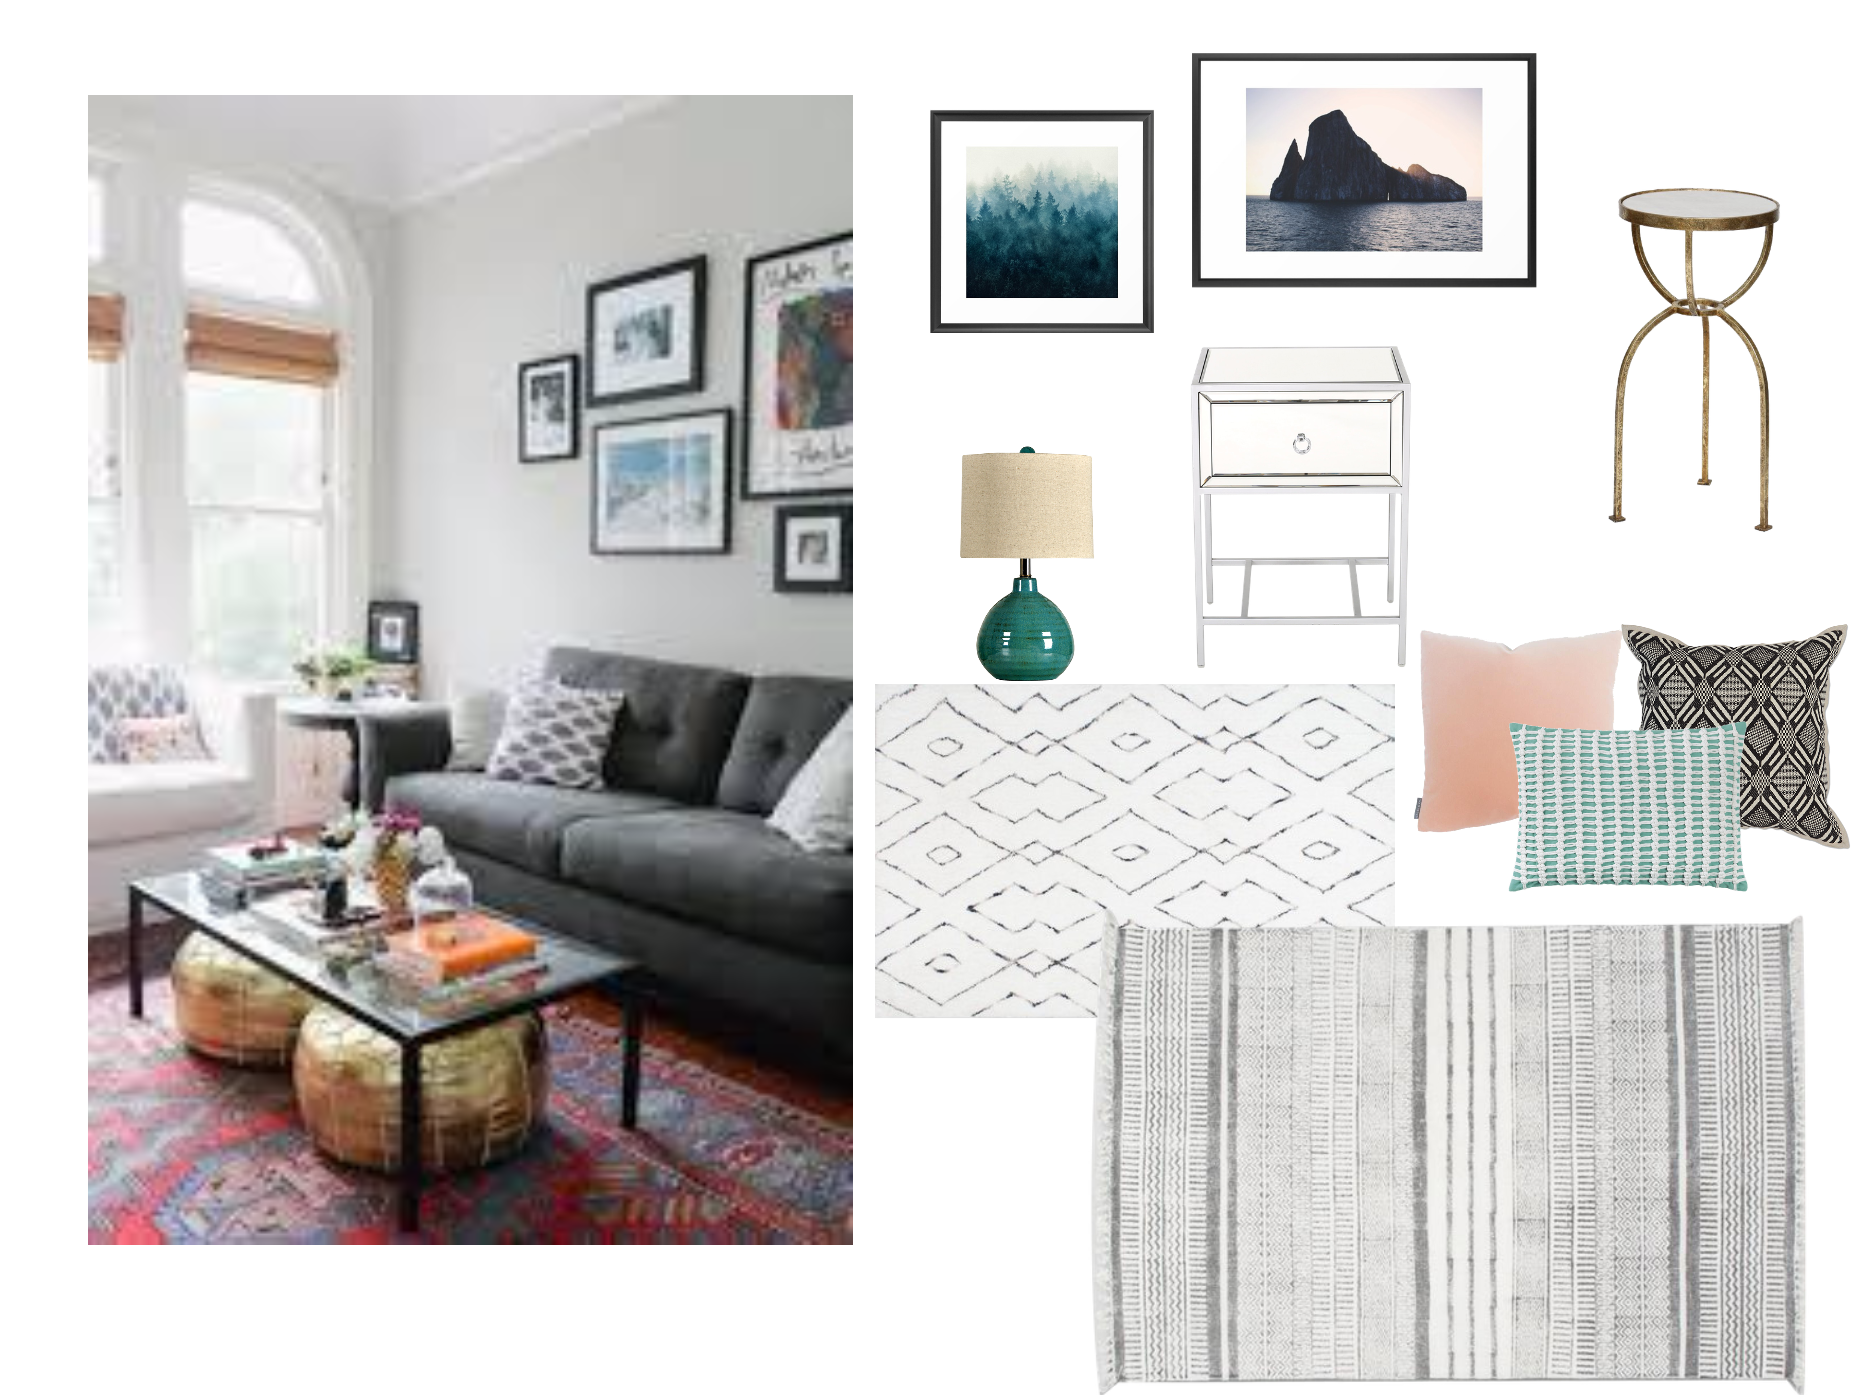 Online Interior Design Q A For Free About Room Layout Small Spaces And Combining Different